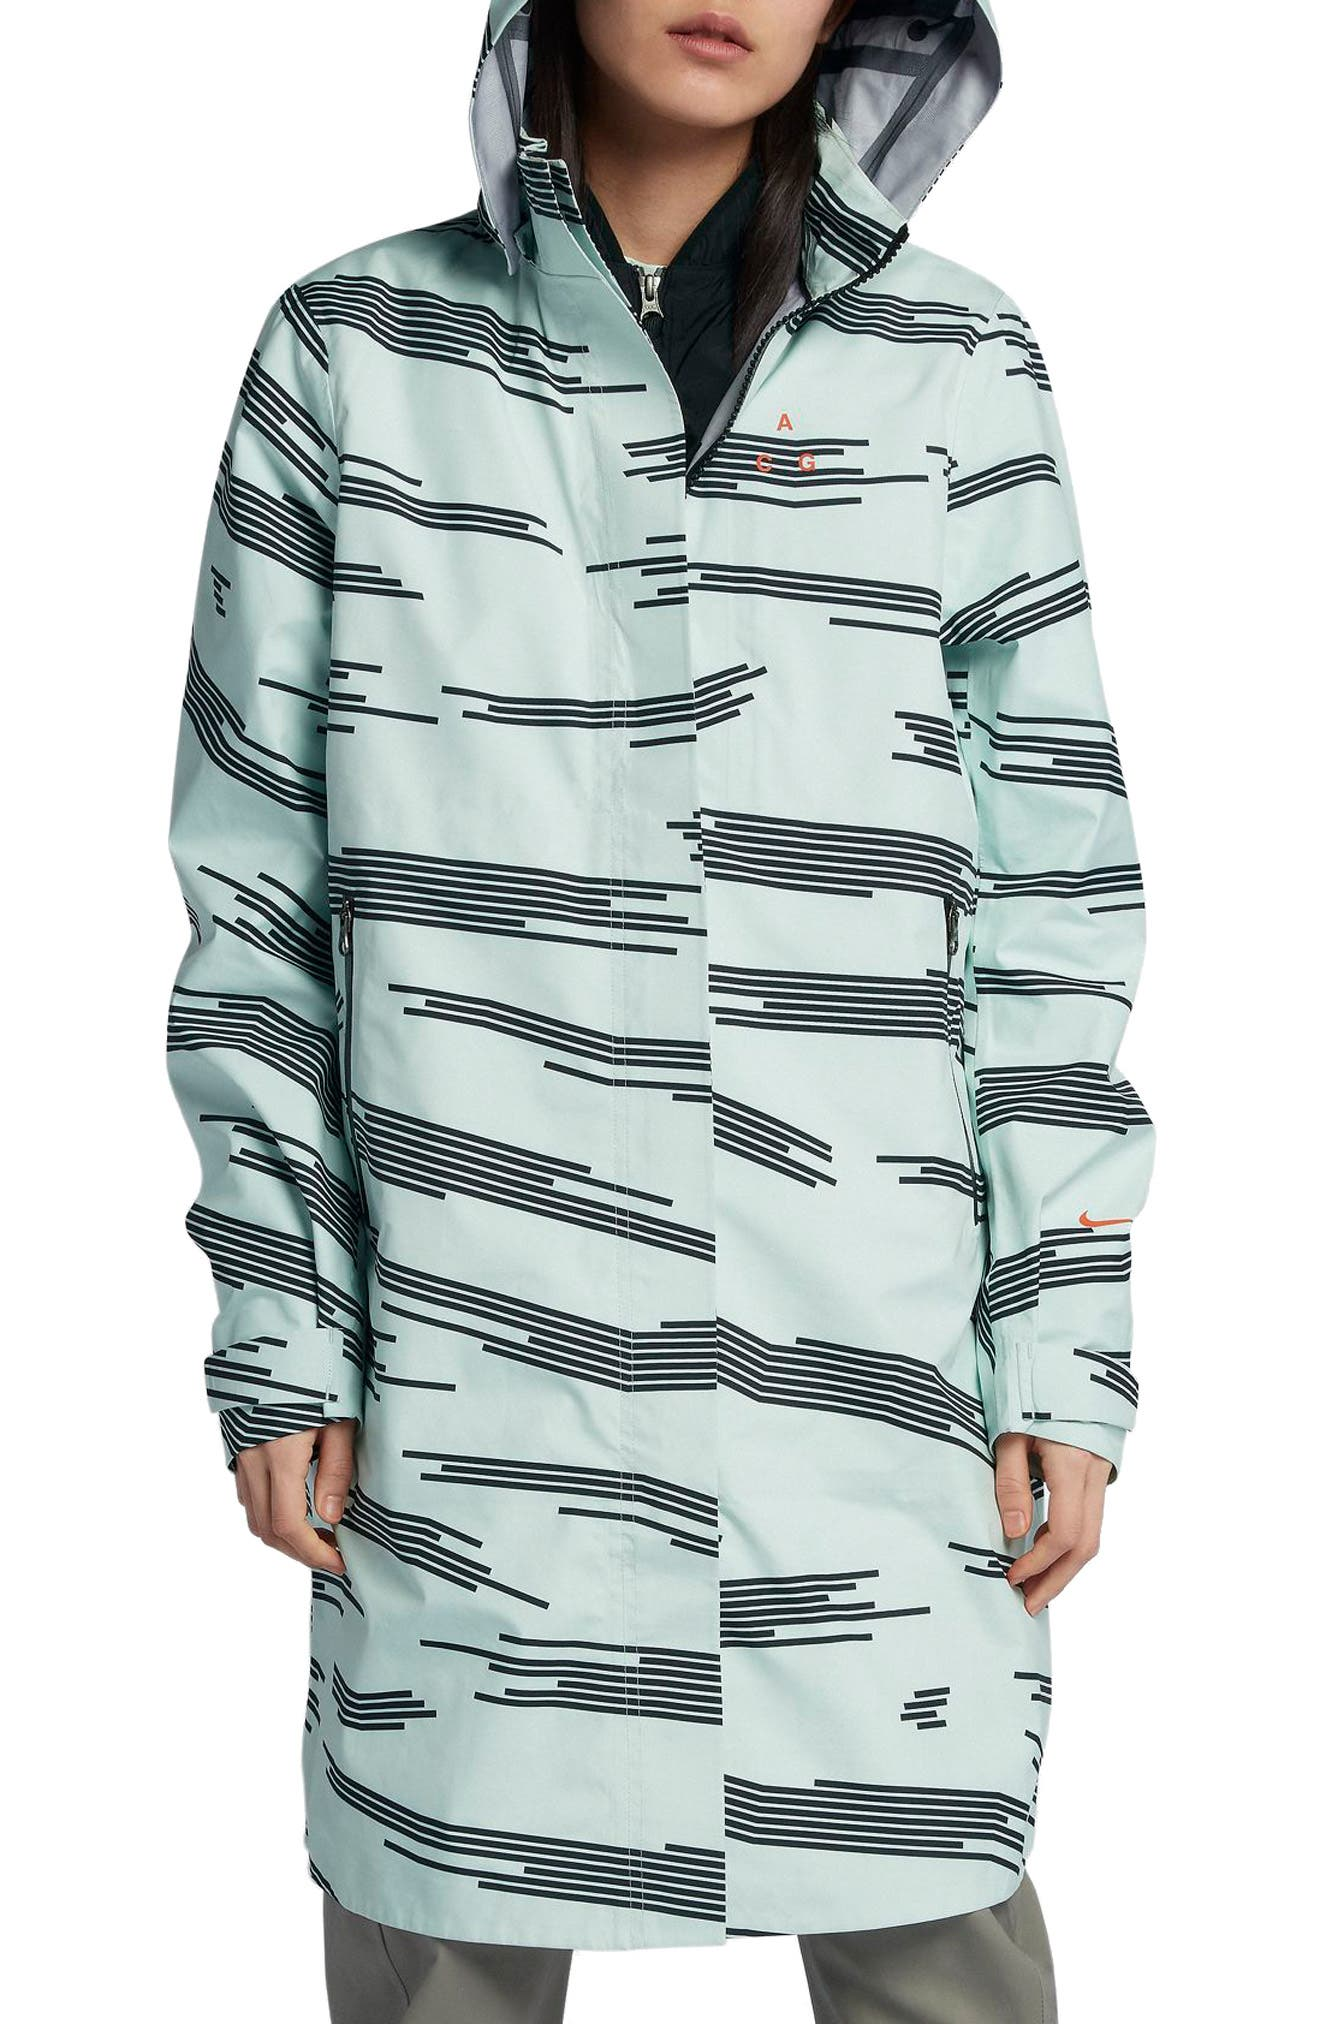 NikeLab ACG 3-in-1 System Women's Coat,                         Main,                         color, Barely Green/ Black